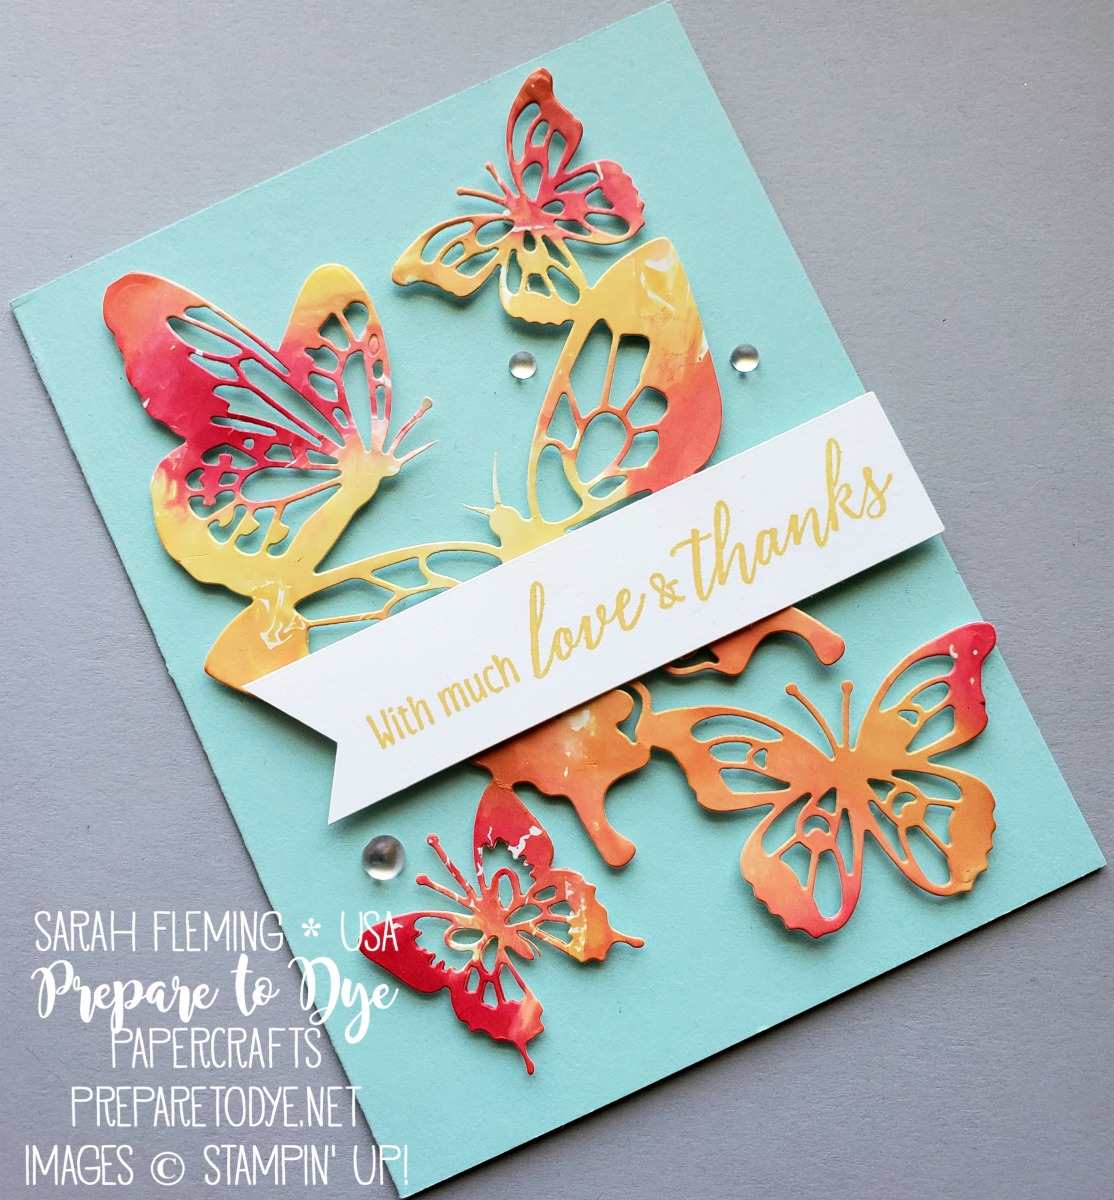 Stampin' Up! Petal Palette, Butterfly Beauty Thinlits, handmade thank you card with ink smooshing - Sarah Fleming - Prepare to Dye Papercrafts